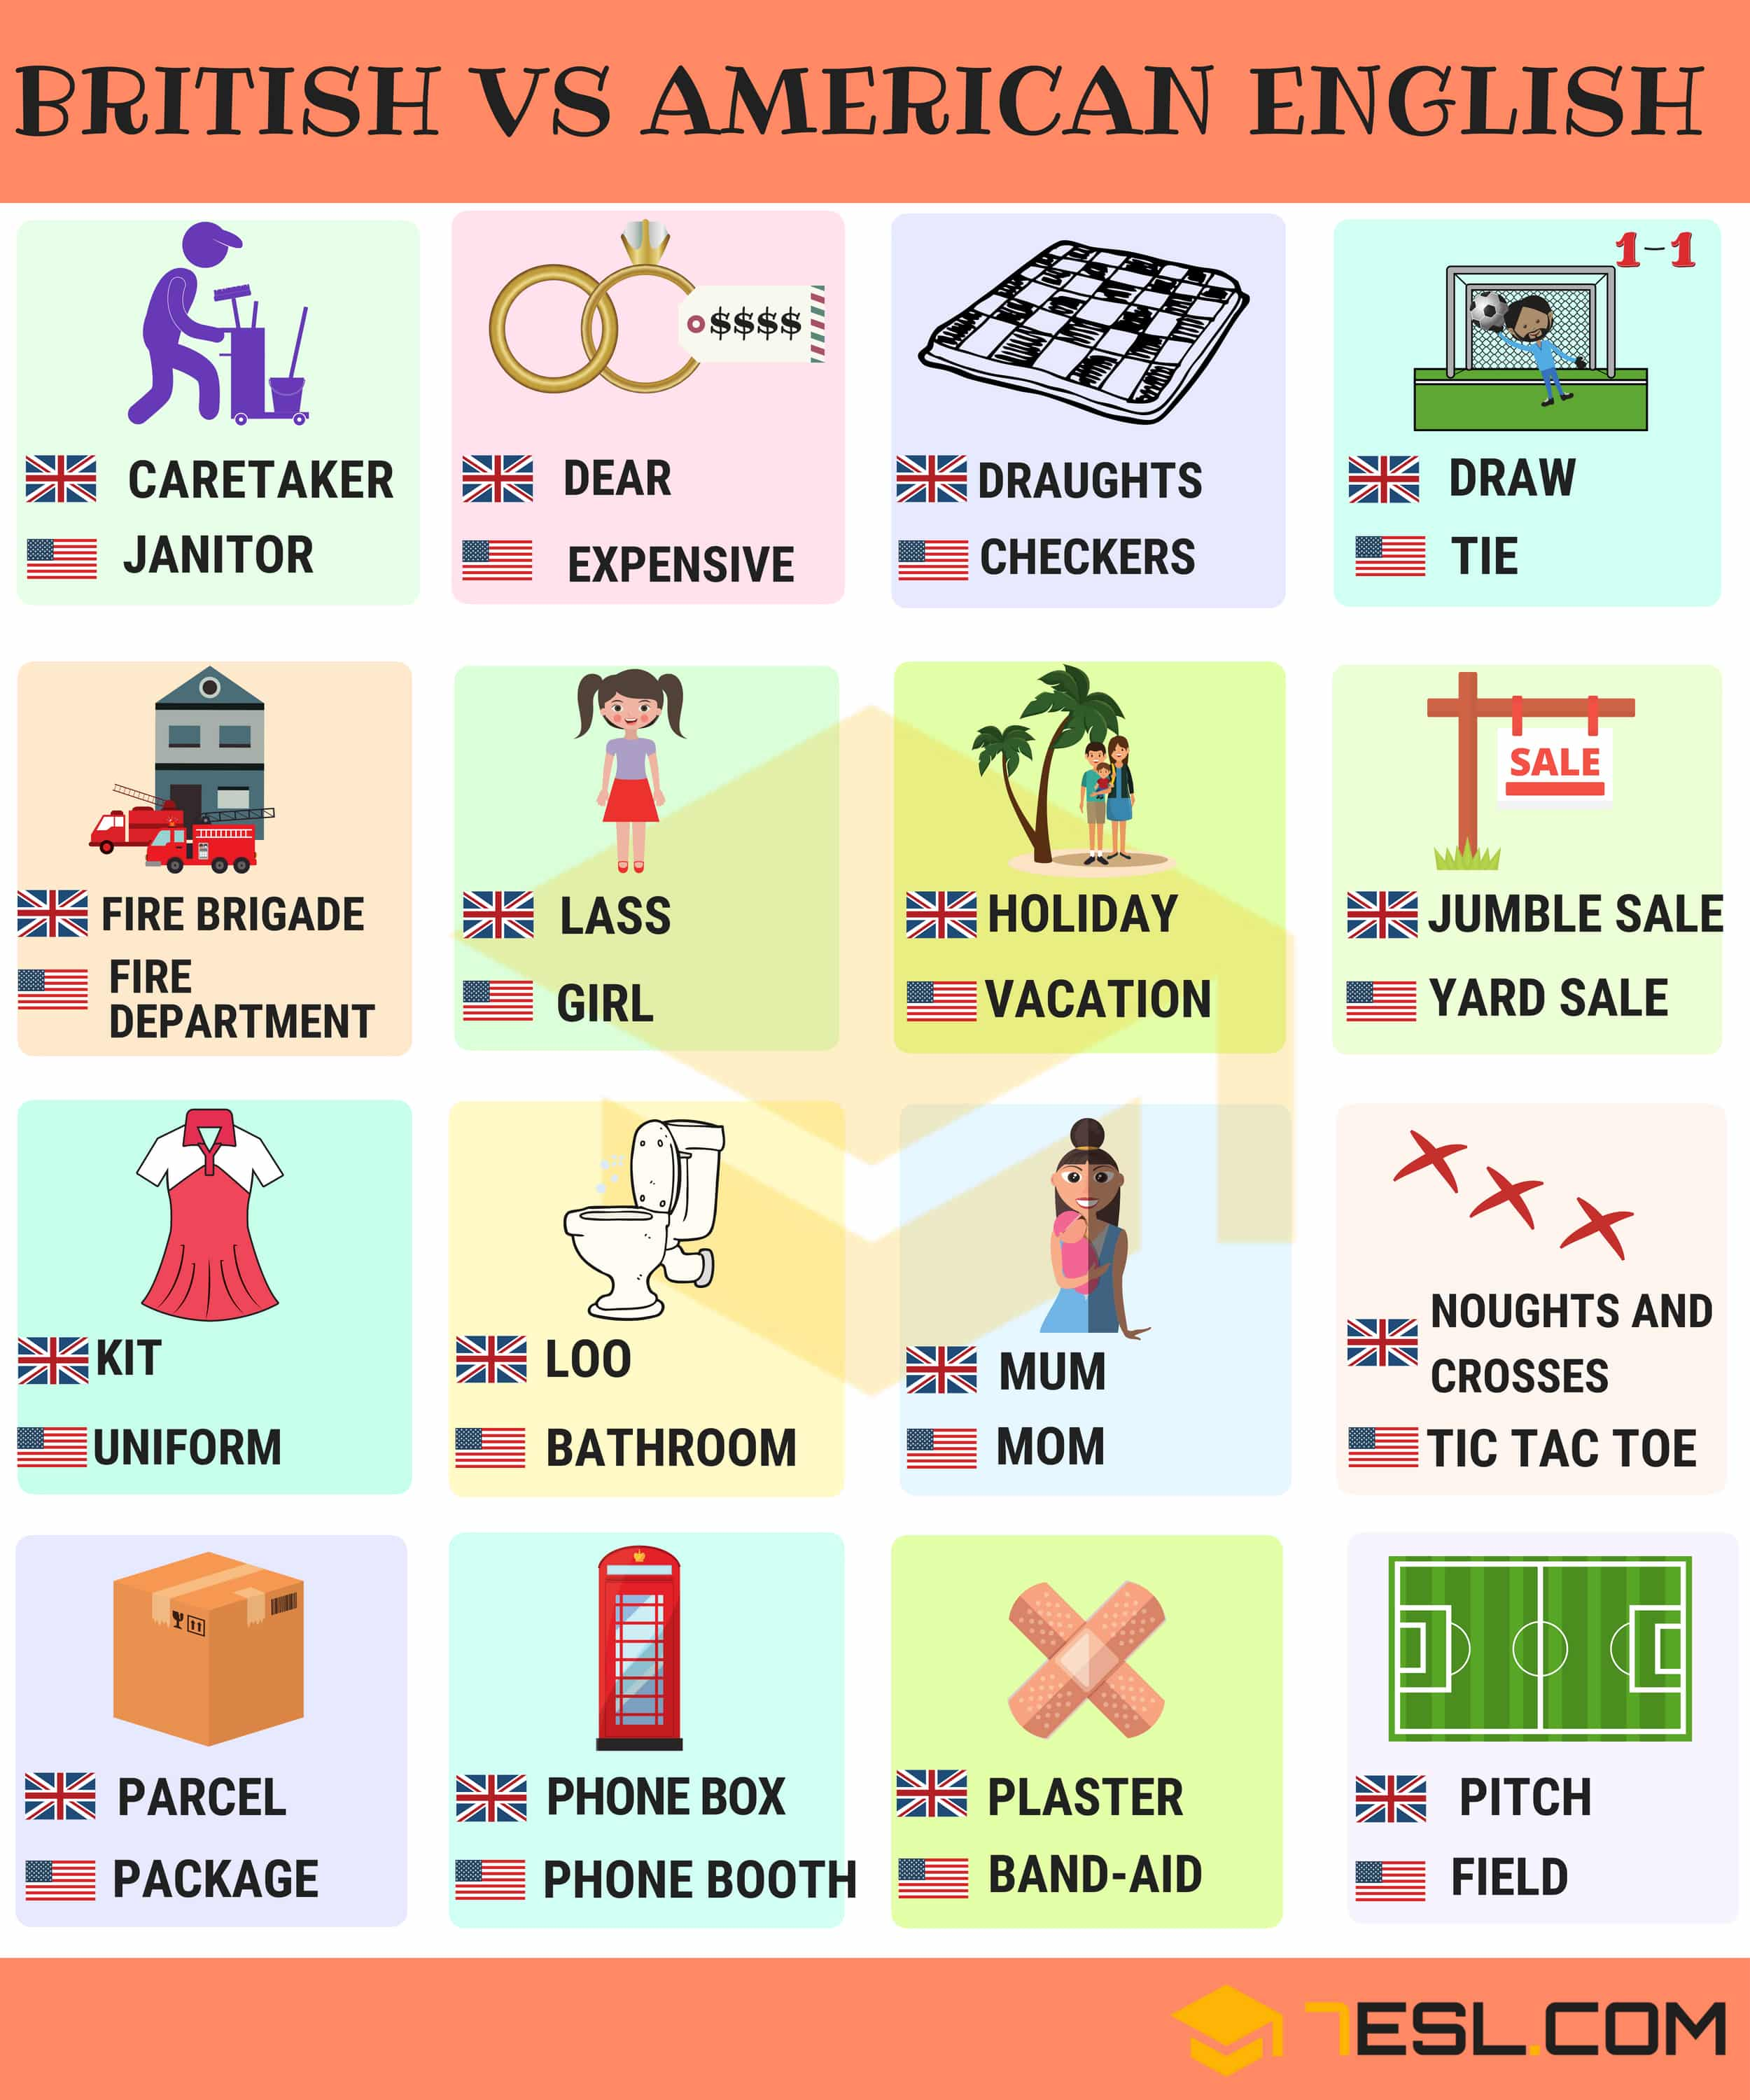 British and American English: 200+ Differences Illustrated 8